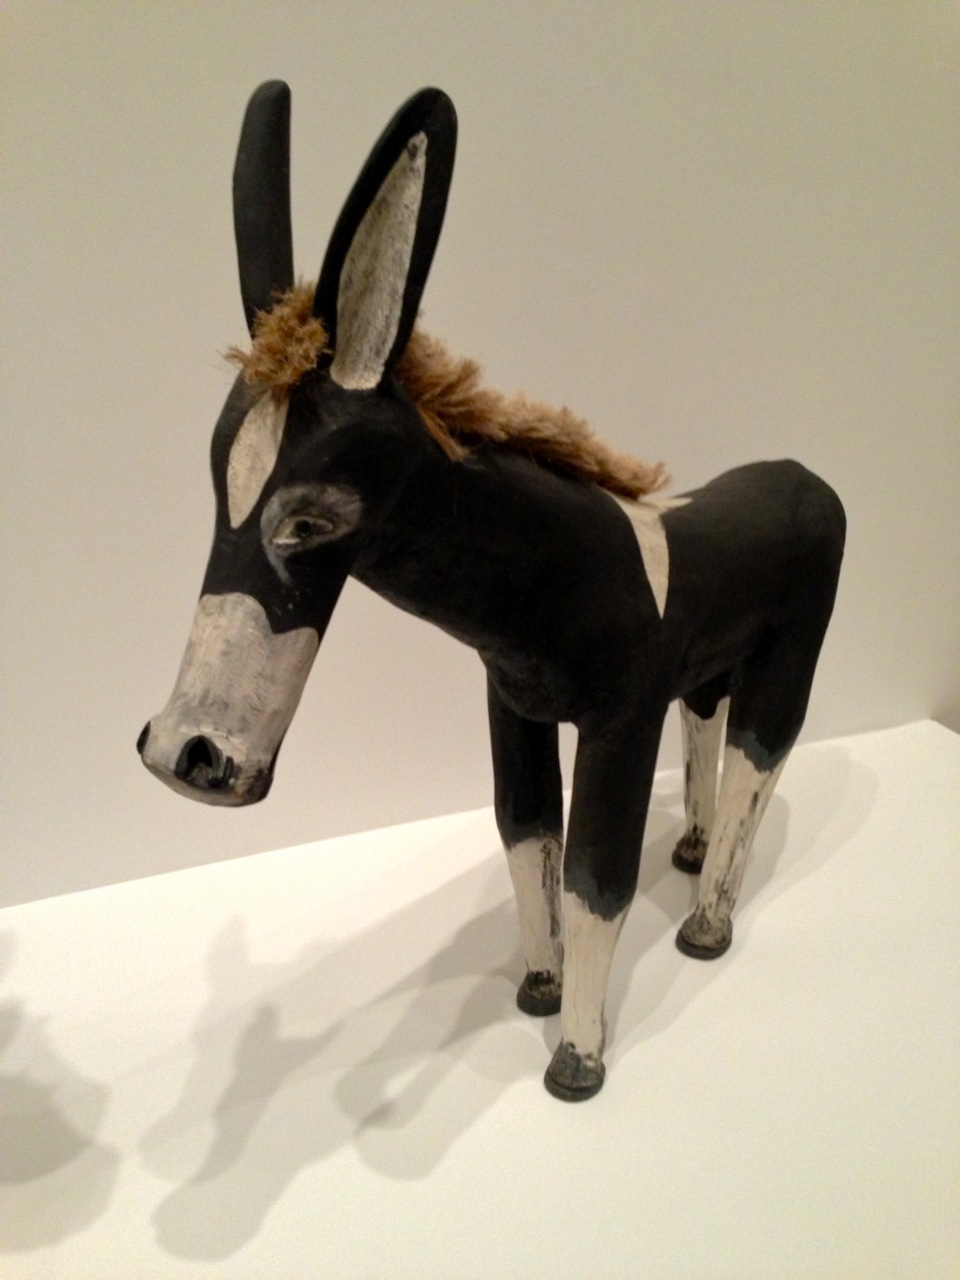 Filipe Benito Archuleta, Donkey, 1981. Cottonwood, paint, glass marbles, sisal, sawdust, glue 49 1/2 x 51 x 10 1/2 inches (Photo by Michelle Aldredge from The Jill and Sheldon Bonovitz Collection at the Philadelphia Museum of Art)